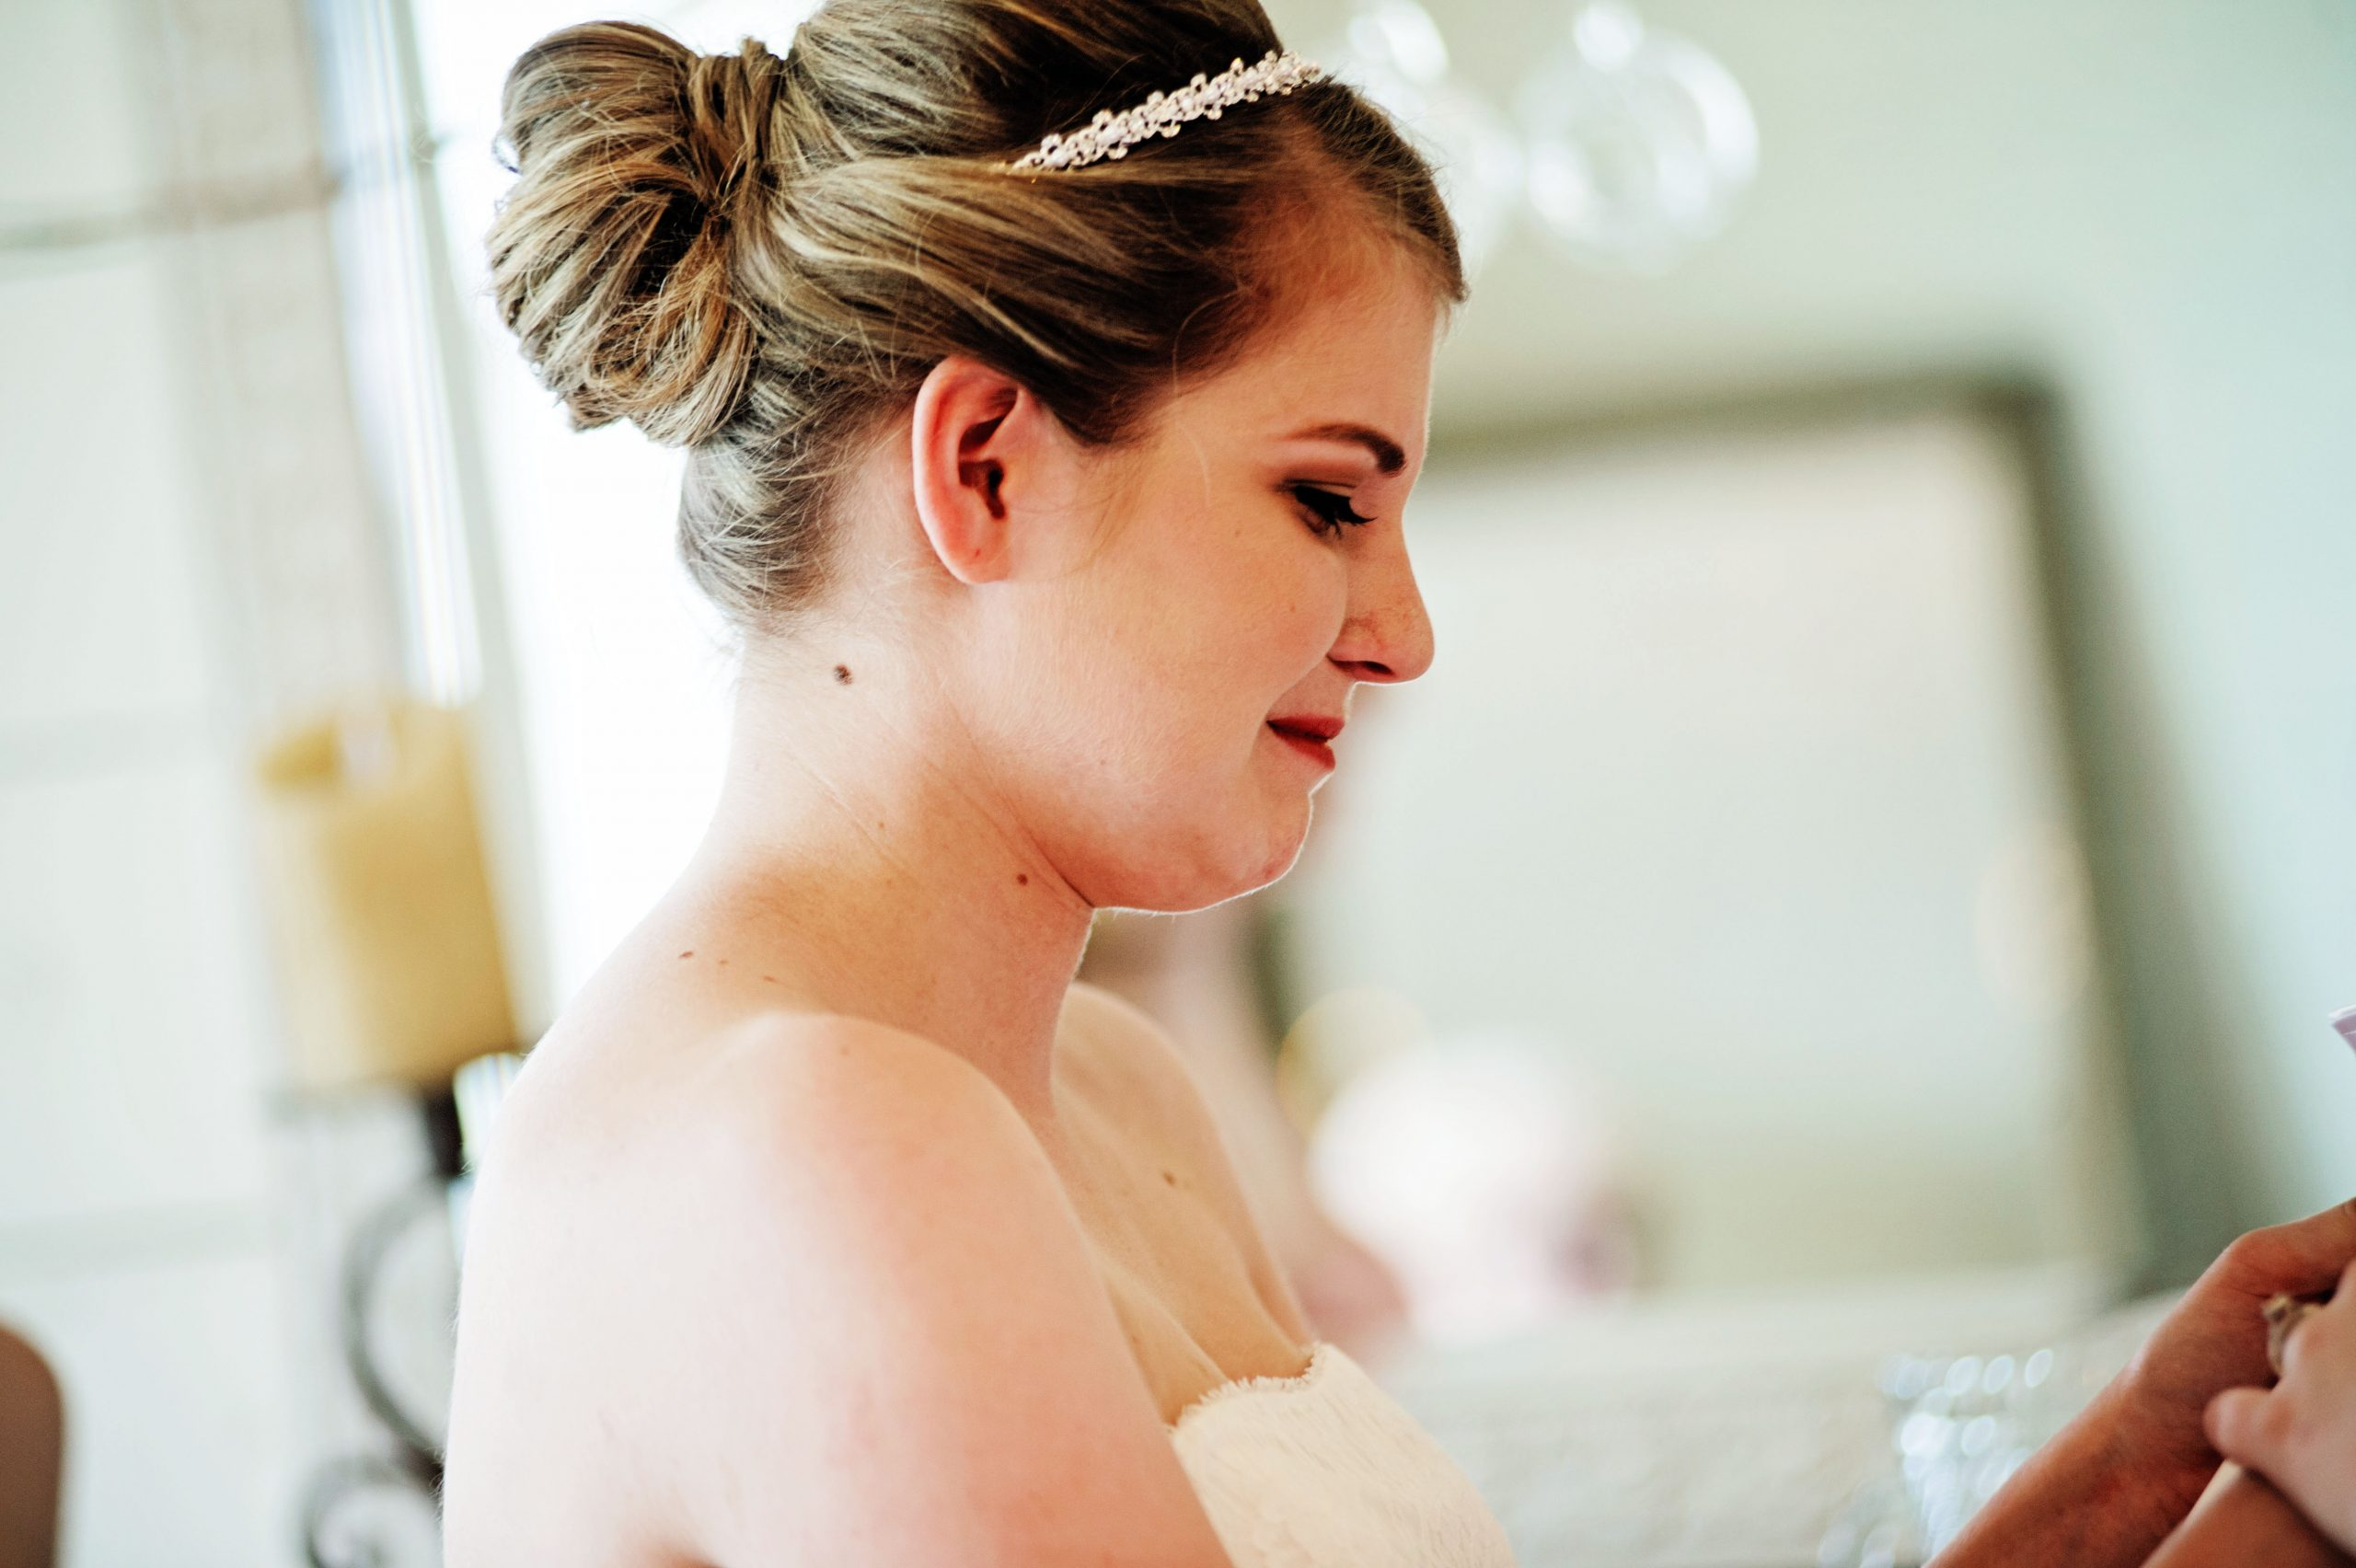 A letter from her future husband, Kady breaks out in tears in the brides suite at Lakeview Farms of York, PA. Lovefusion Photography had the pleasure of capturing this moment. Featured in Dream Weddings.